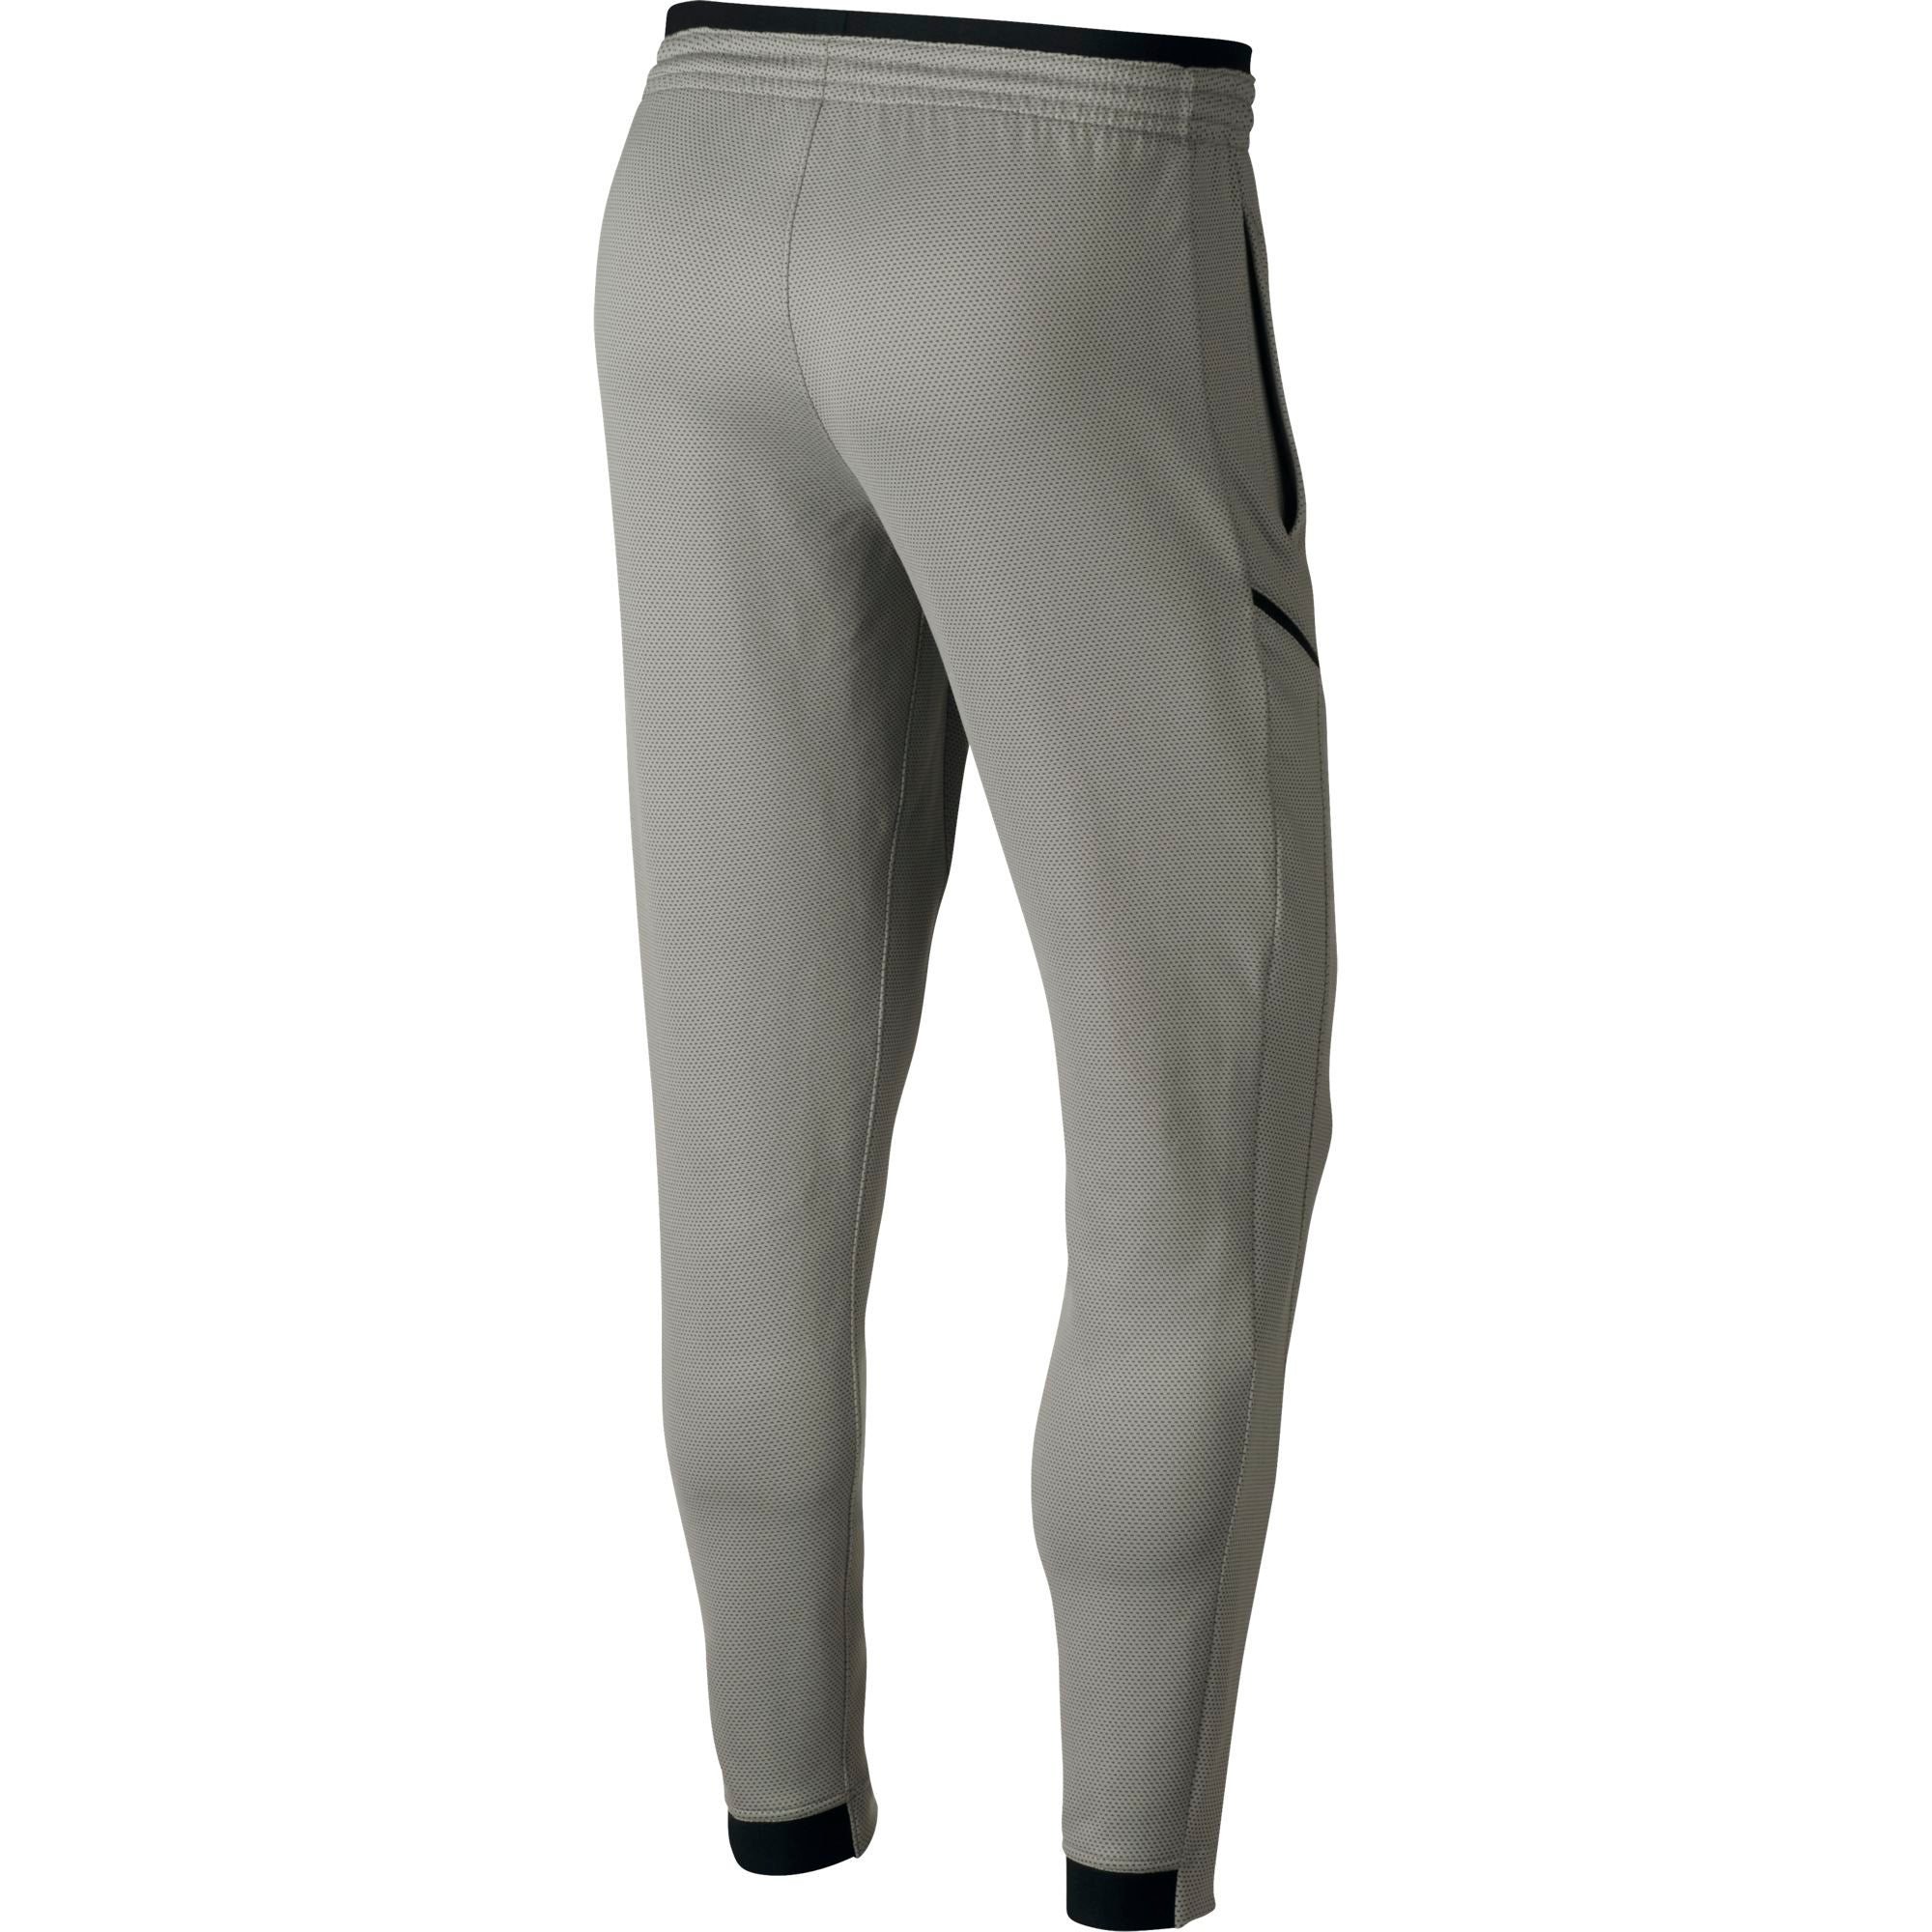 Nike Basketball Therma Flex Showtime Pants - Cobblestone/Ridgerock/Black